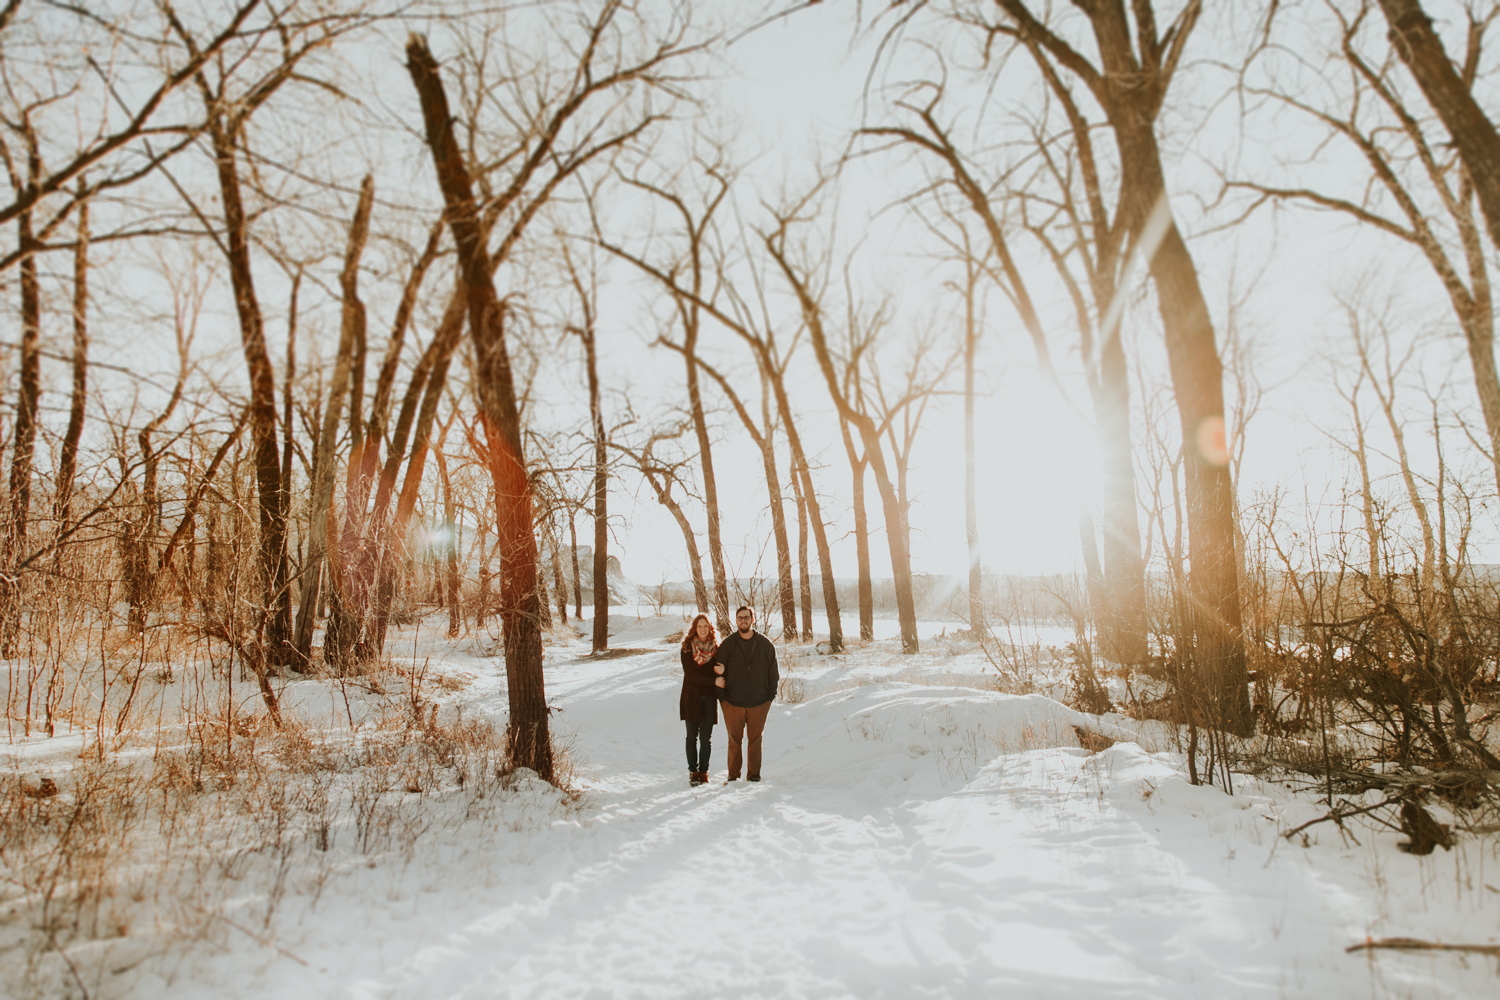 lethbridge-photography-love-and-be-loved-photographer-dan-tynnea-engagement-picture-image-photo-31.jpg